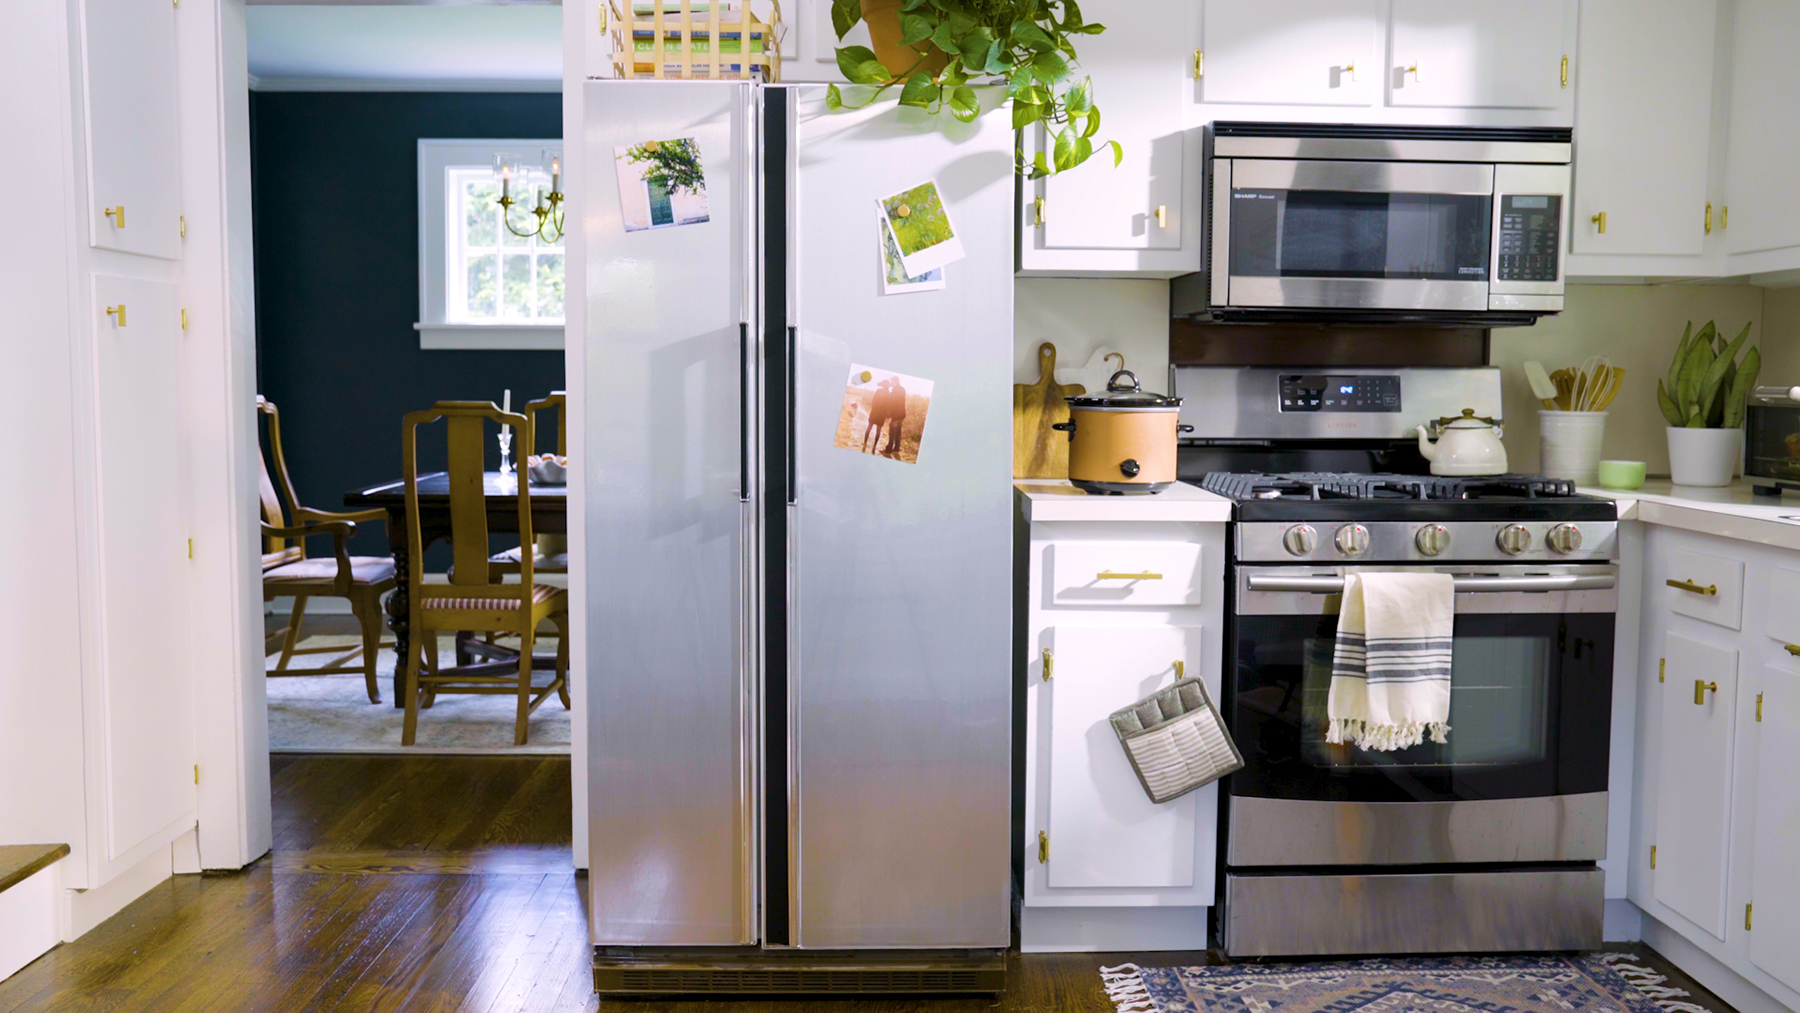 Kitchen with refreshed refrigerator